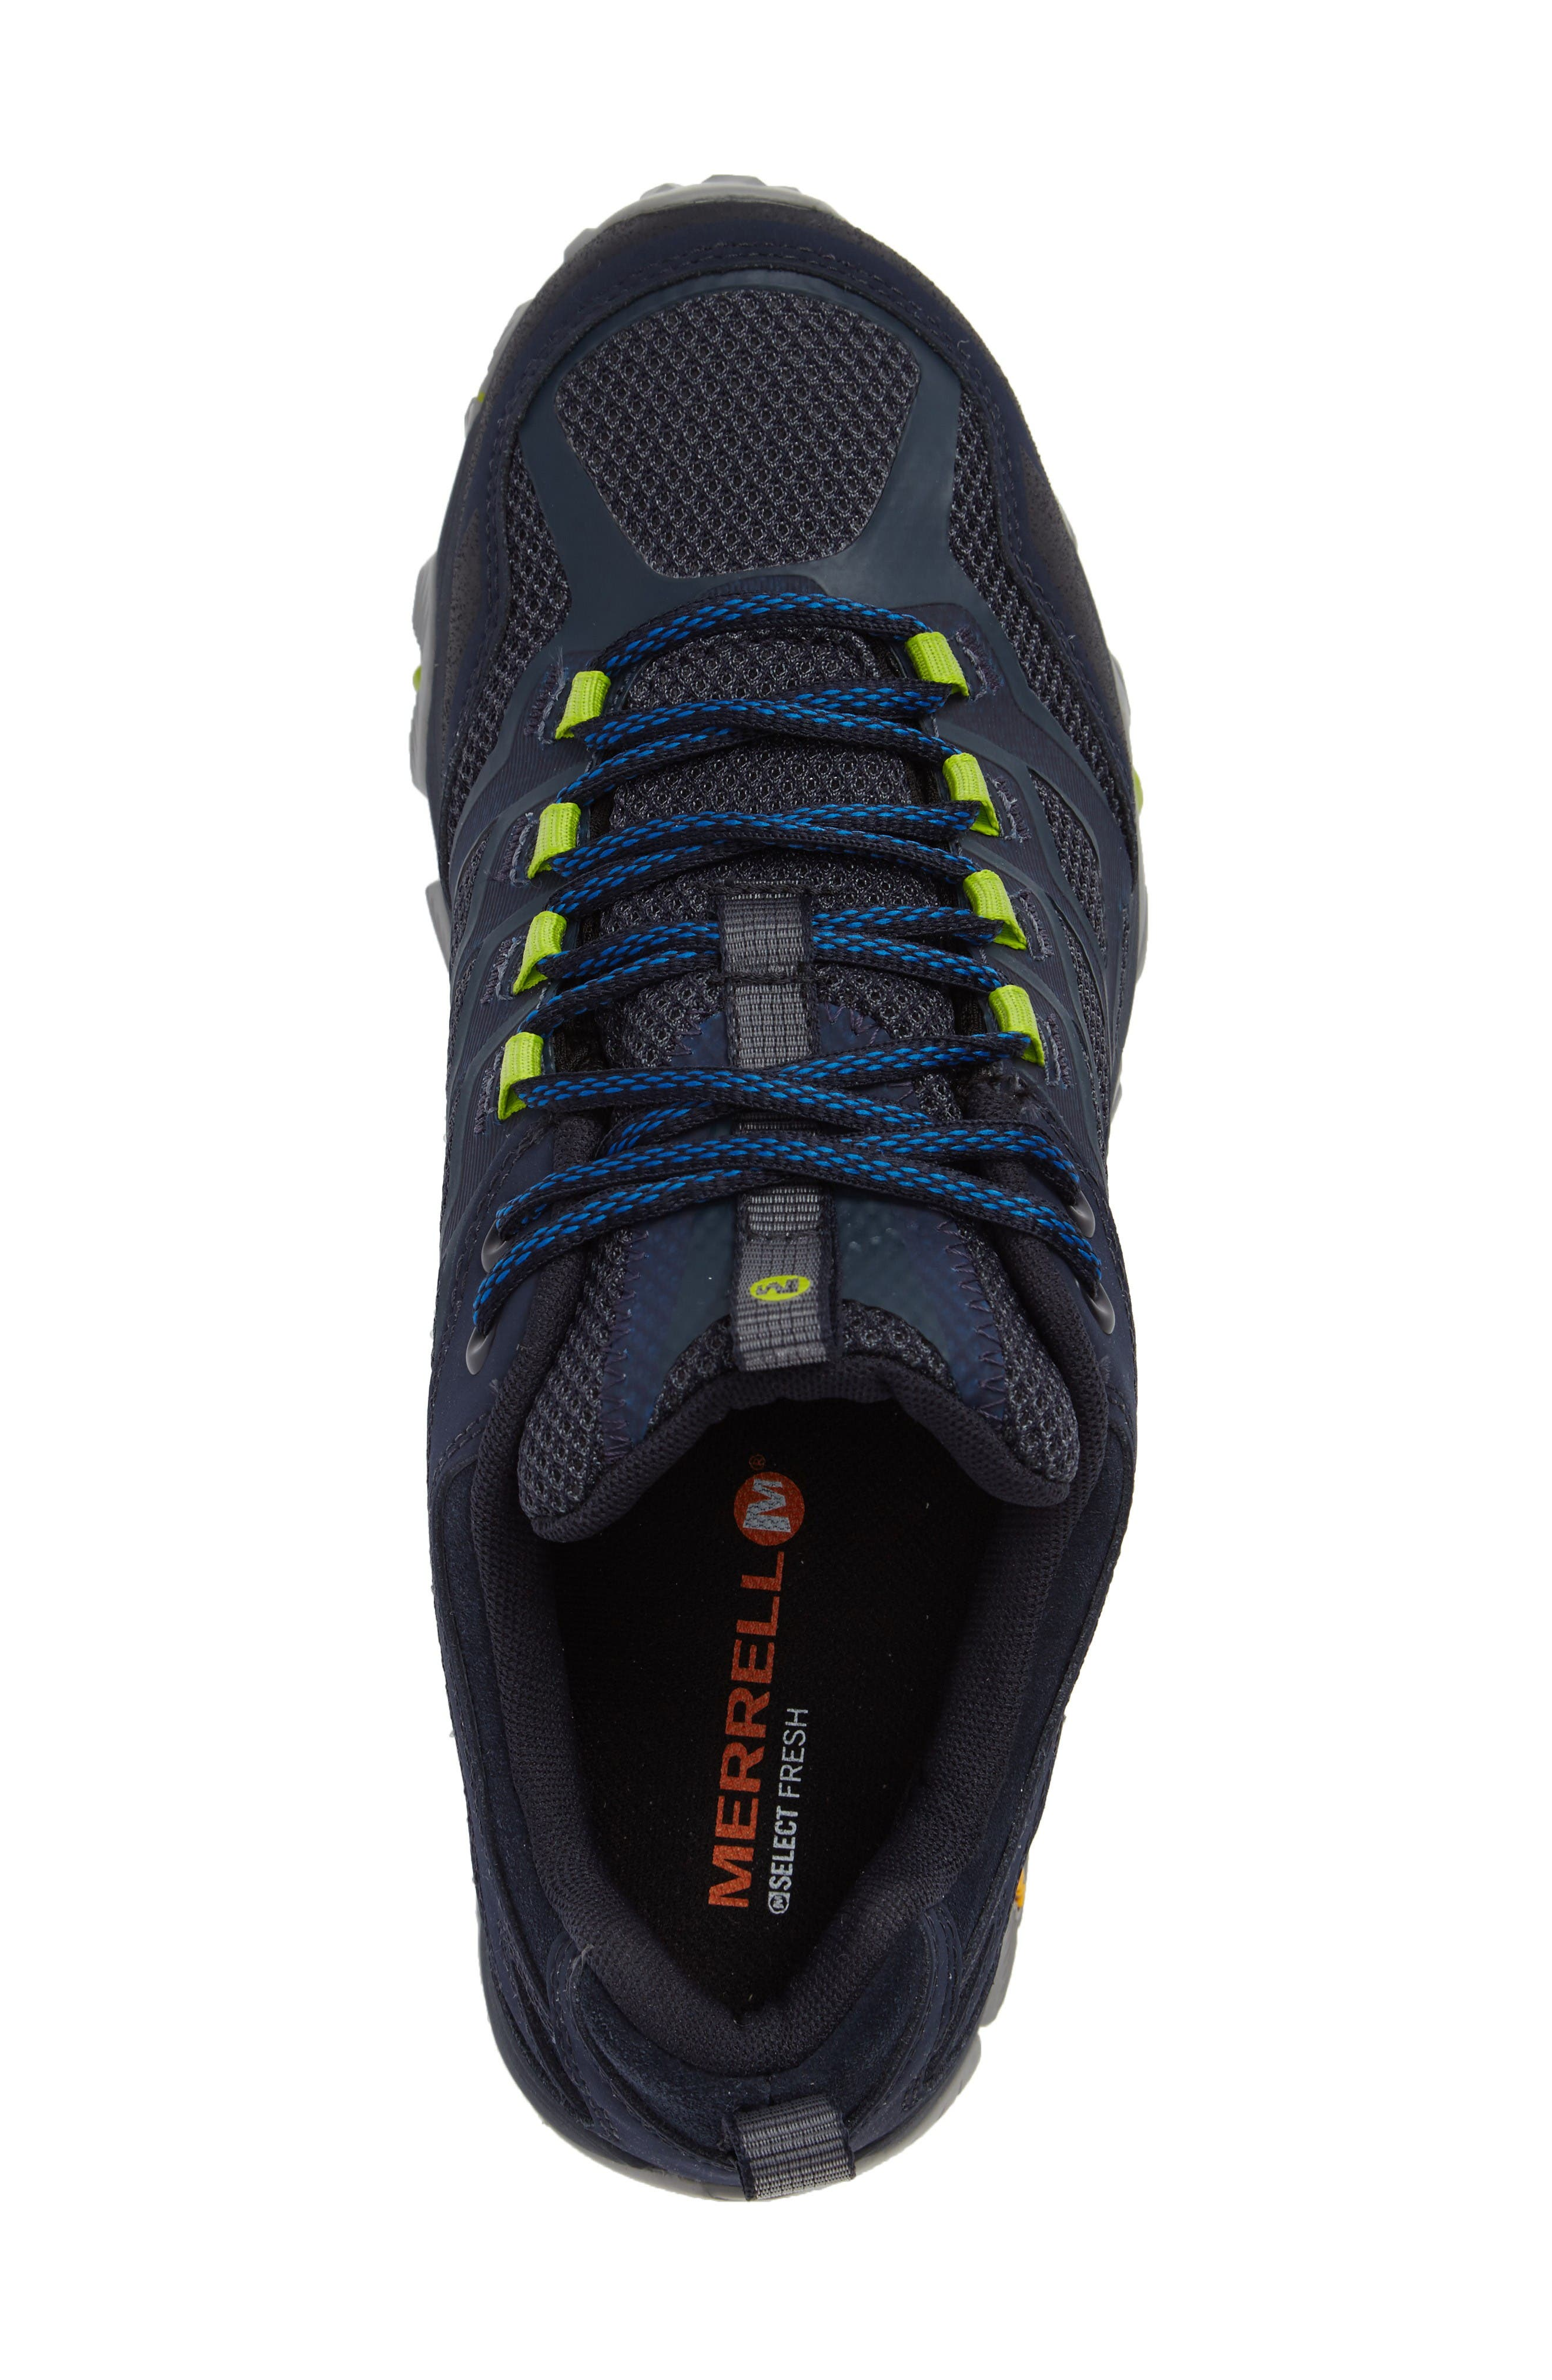 Moab FST Waterproof Hiking Shoe,                             Alternate thumbnail 3, color,                             Navy